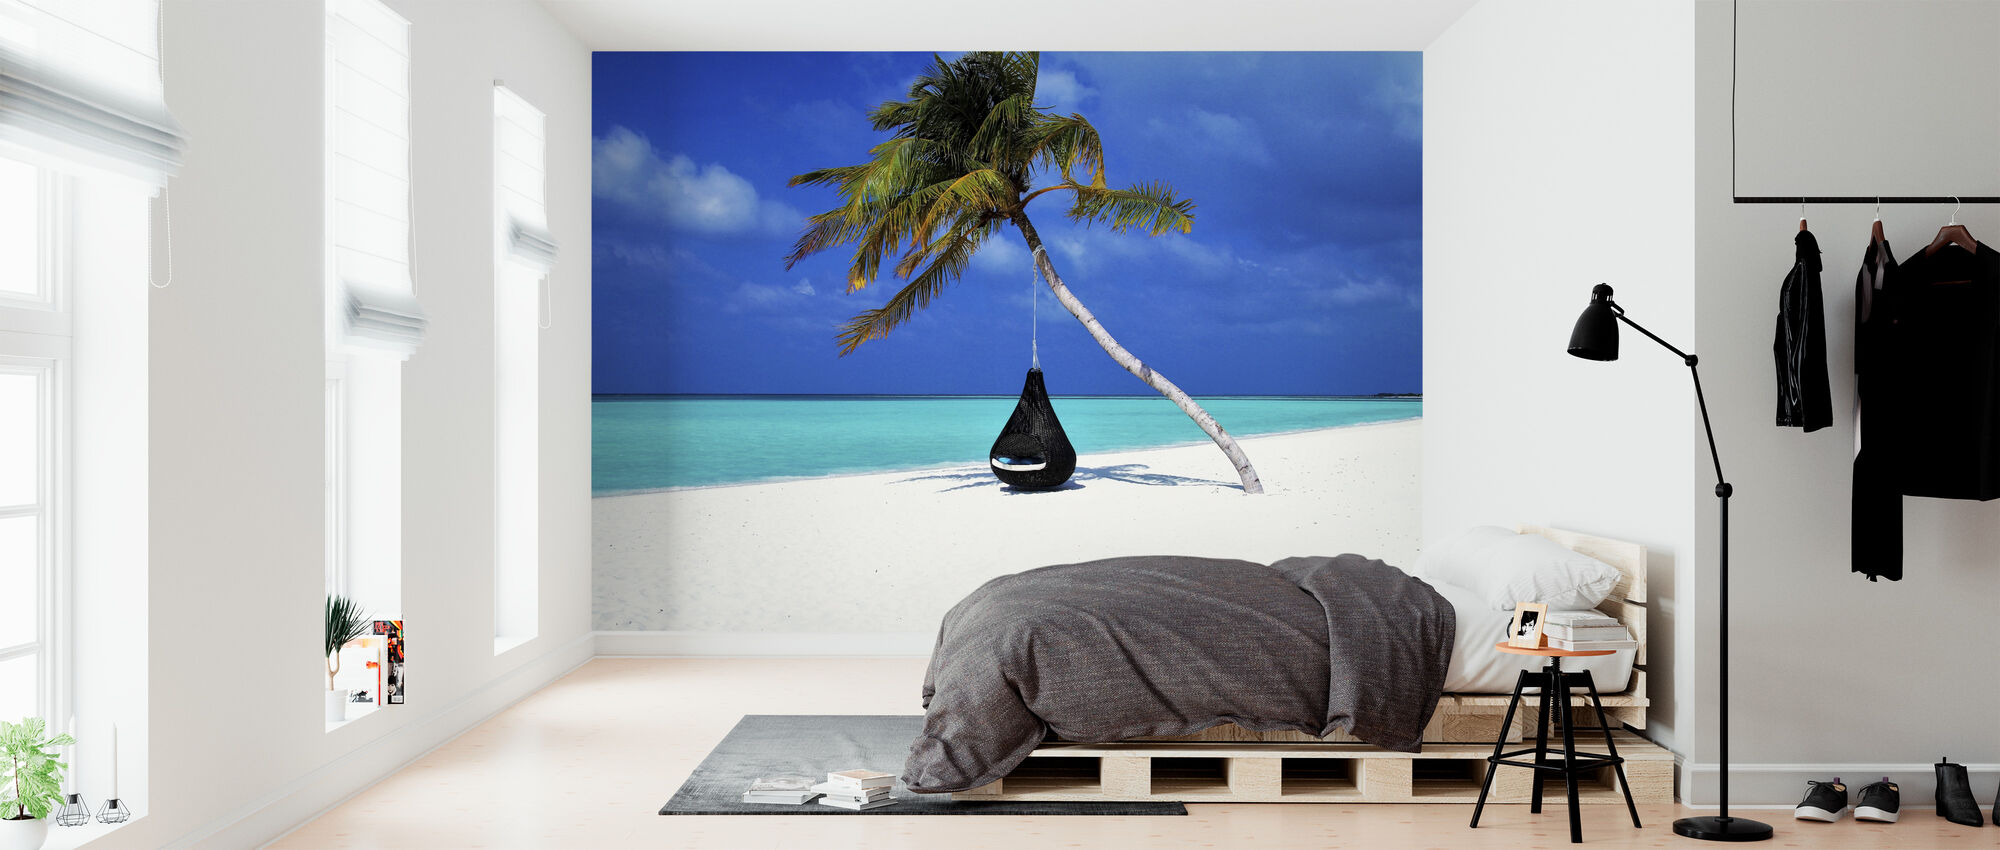 Beautiful Sand and Beach - Wallpaper - Bedroom